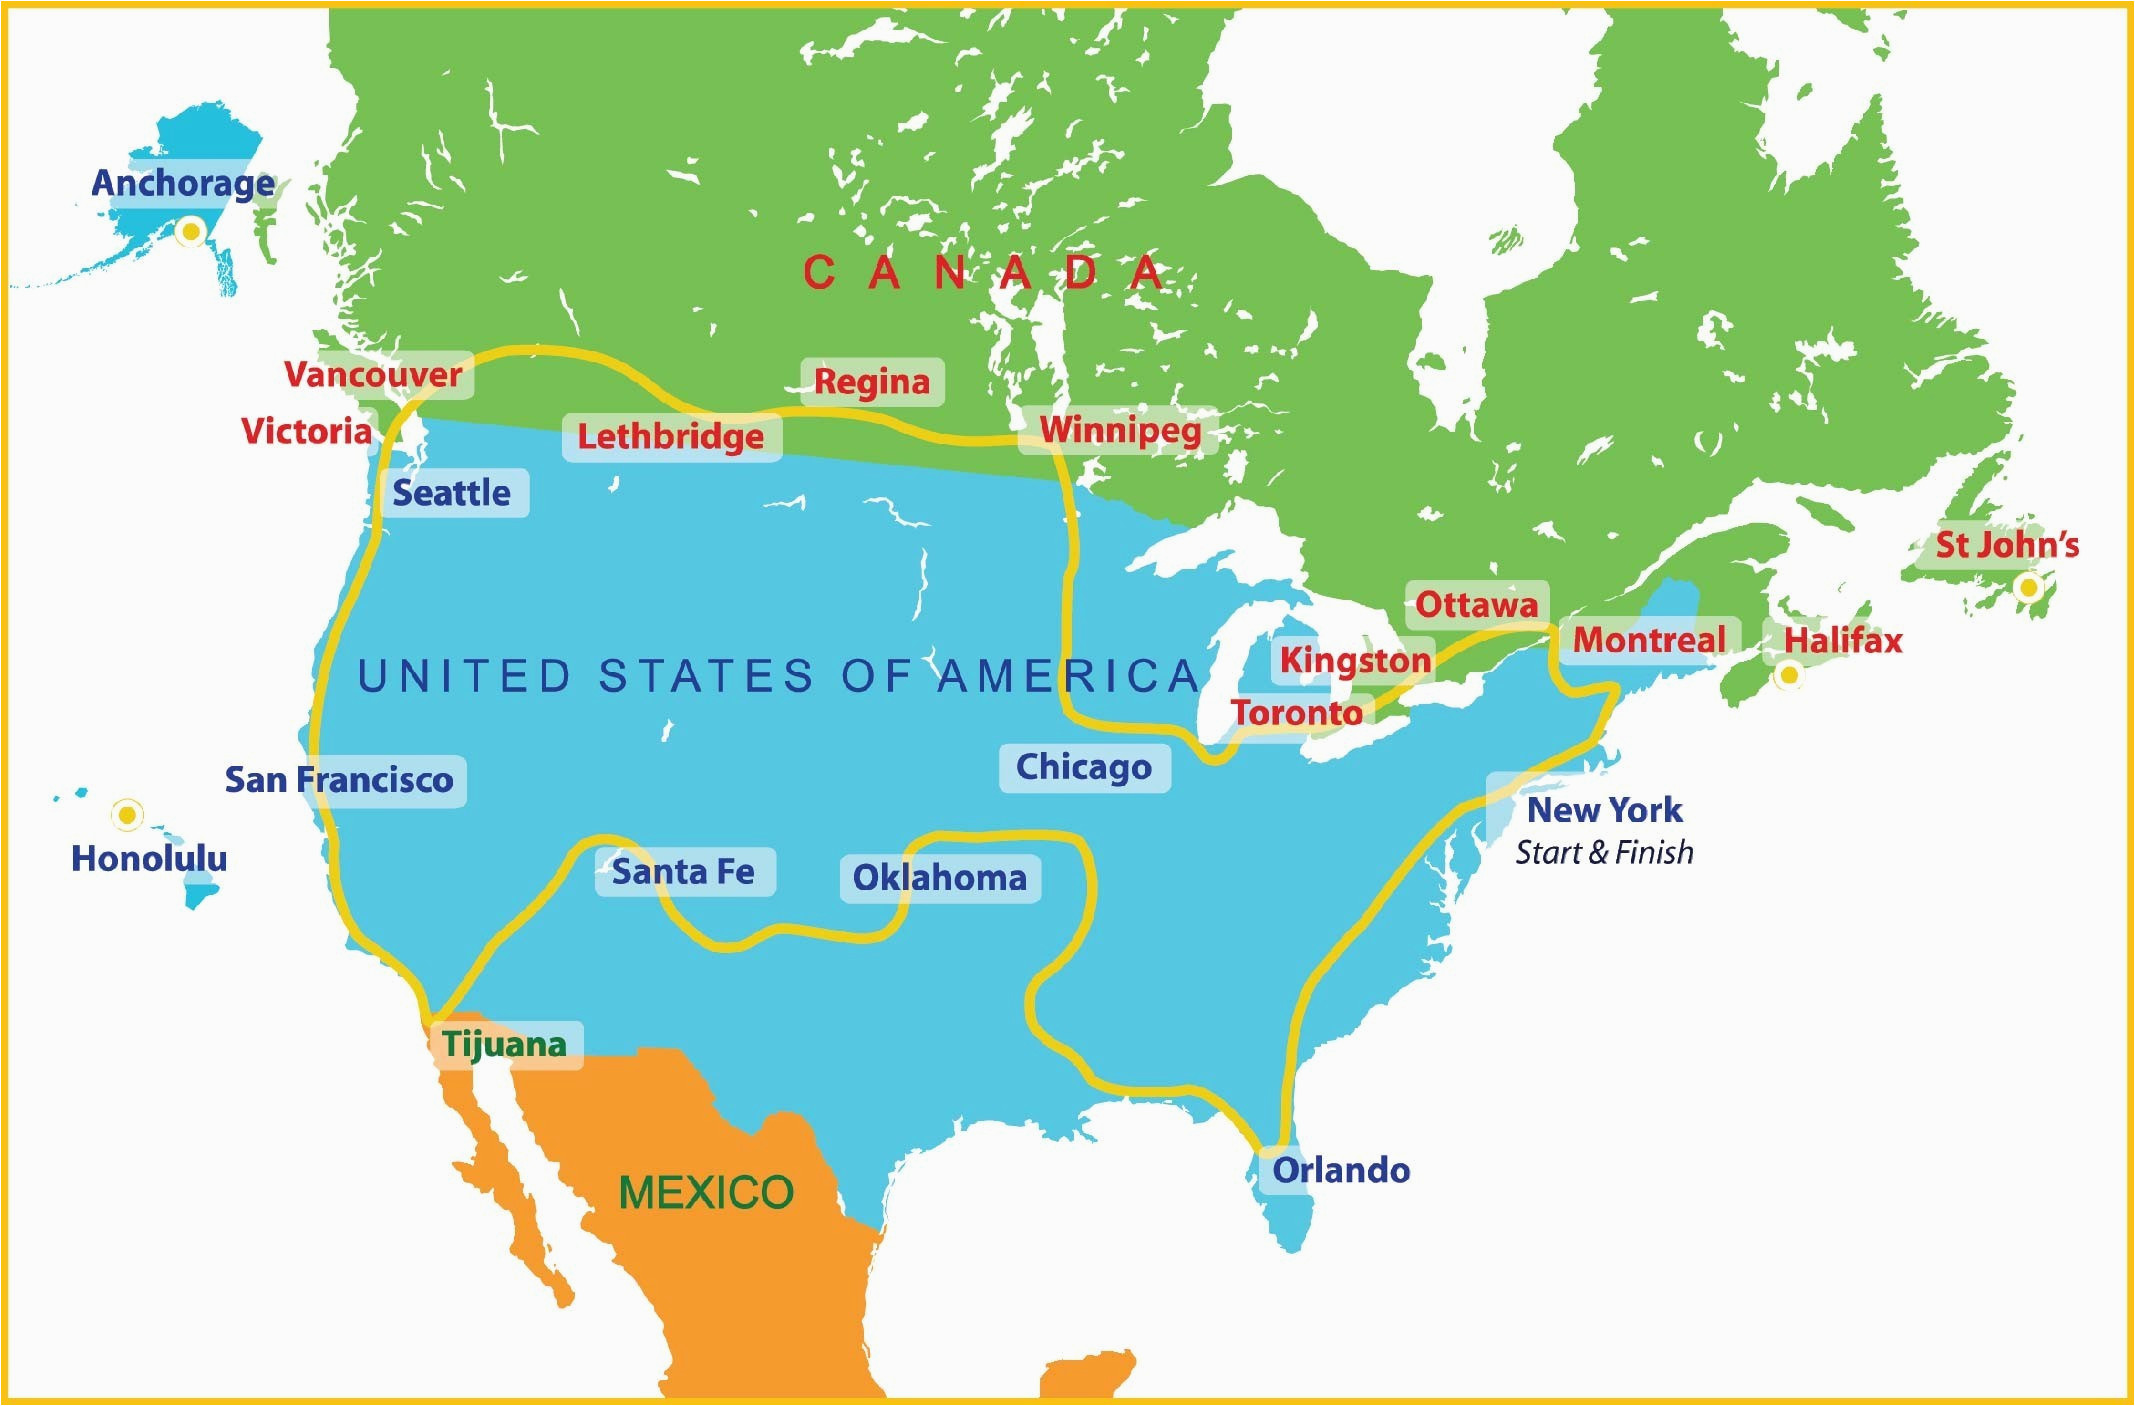 Map Of New York And Ohio.Ohio New York Map Us And Canada City Map Refrence Canada Map With